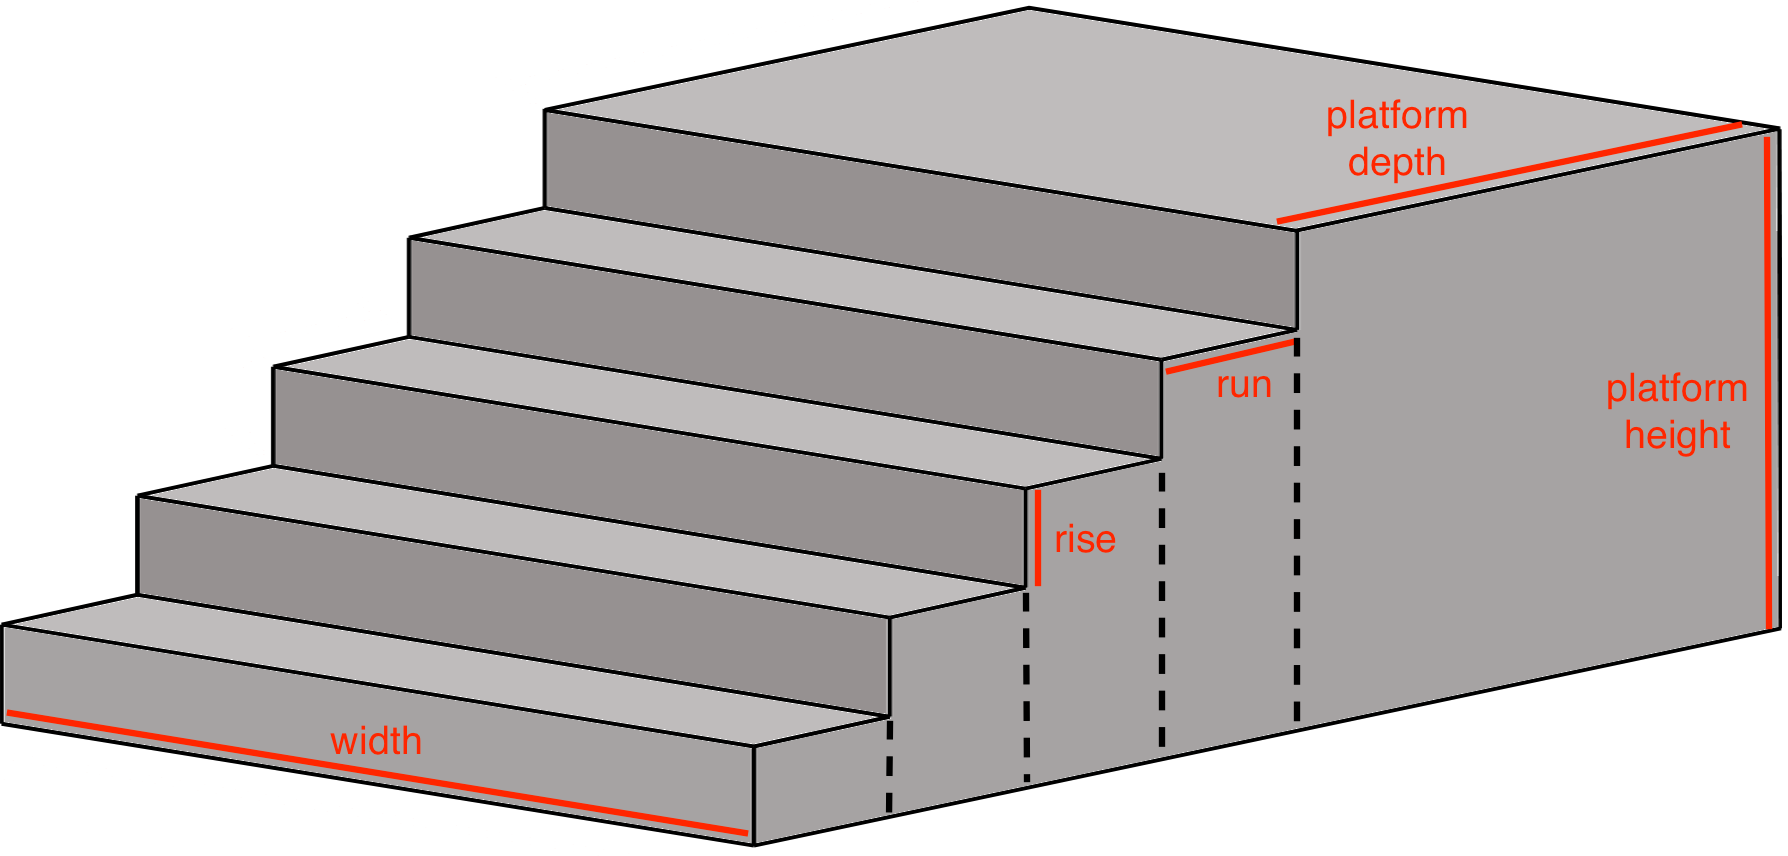 Estimating concrete for steps by breaking up the steps into smaller rectangles